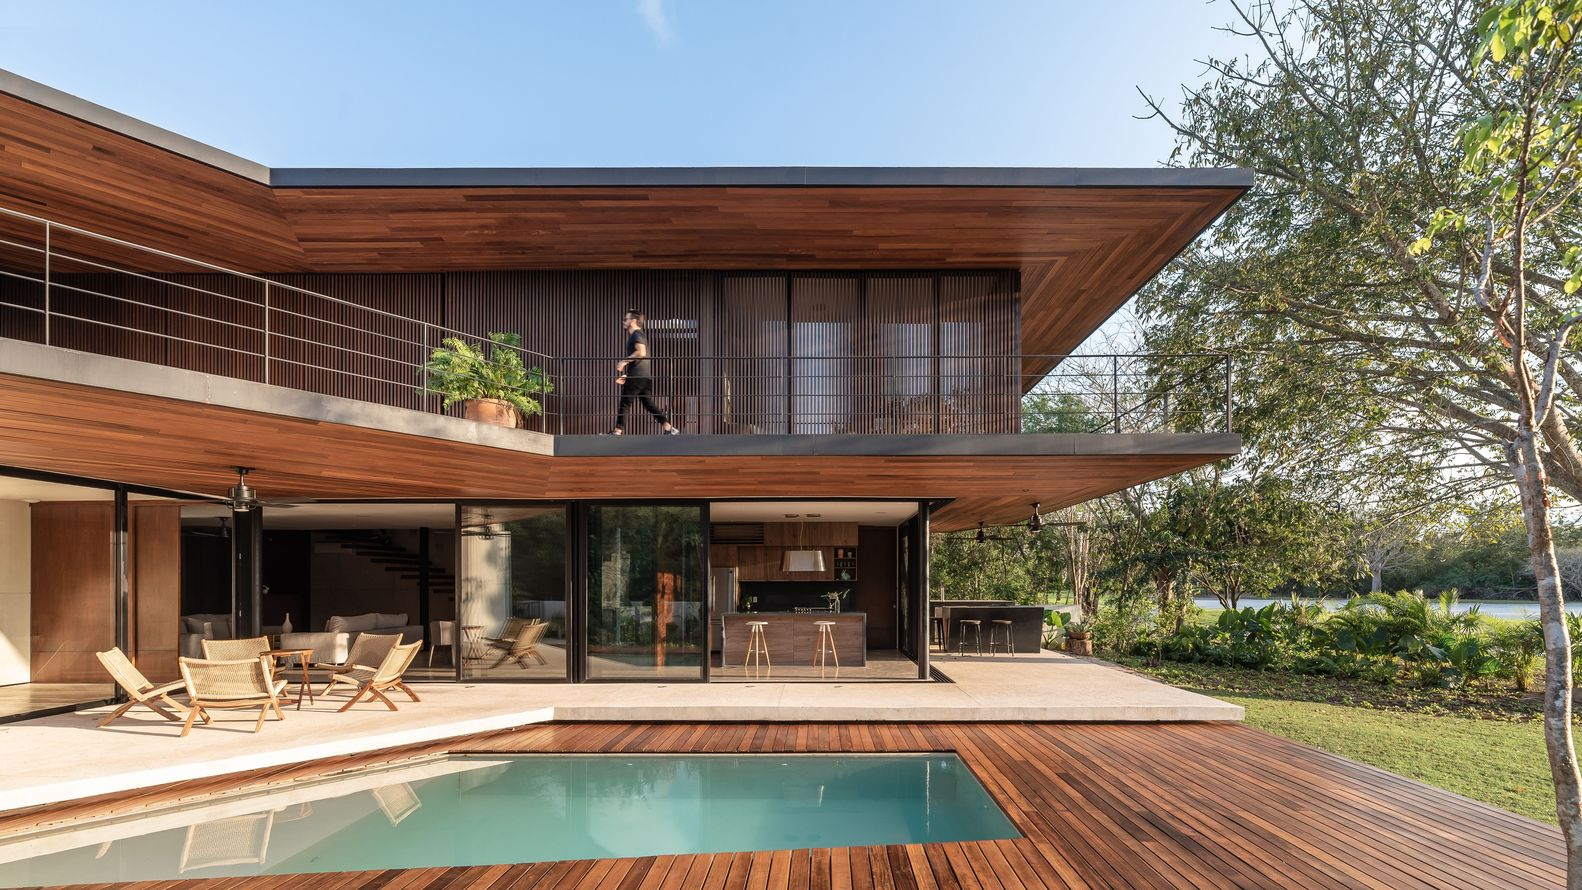 Wood design pool and house